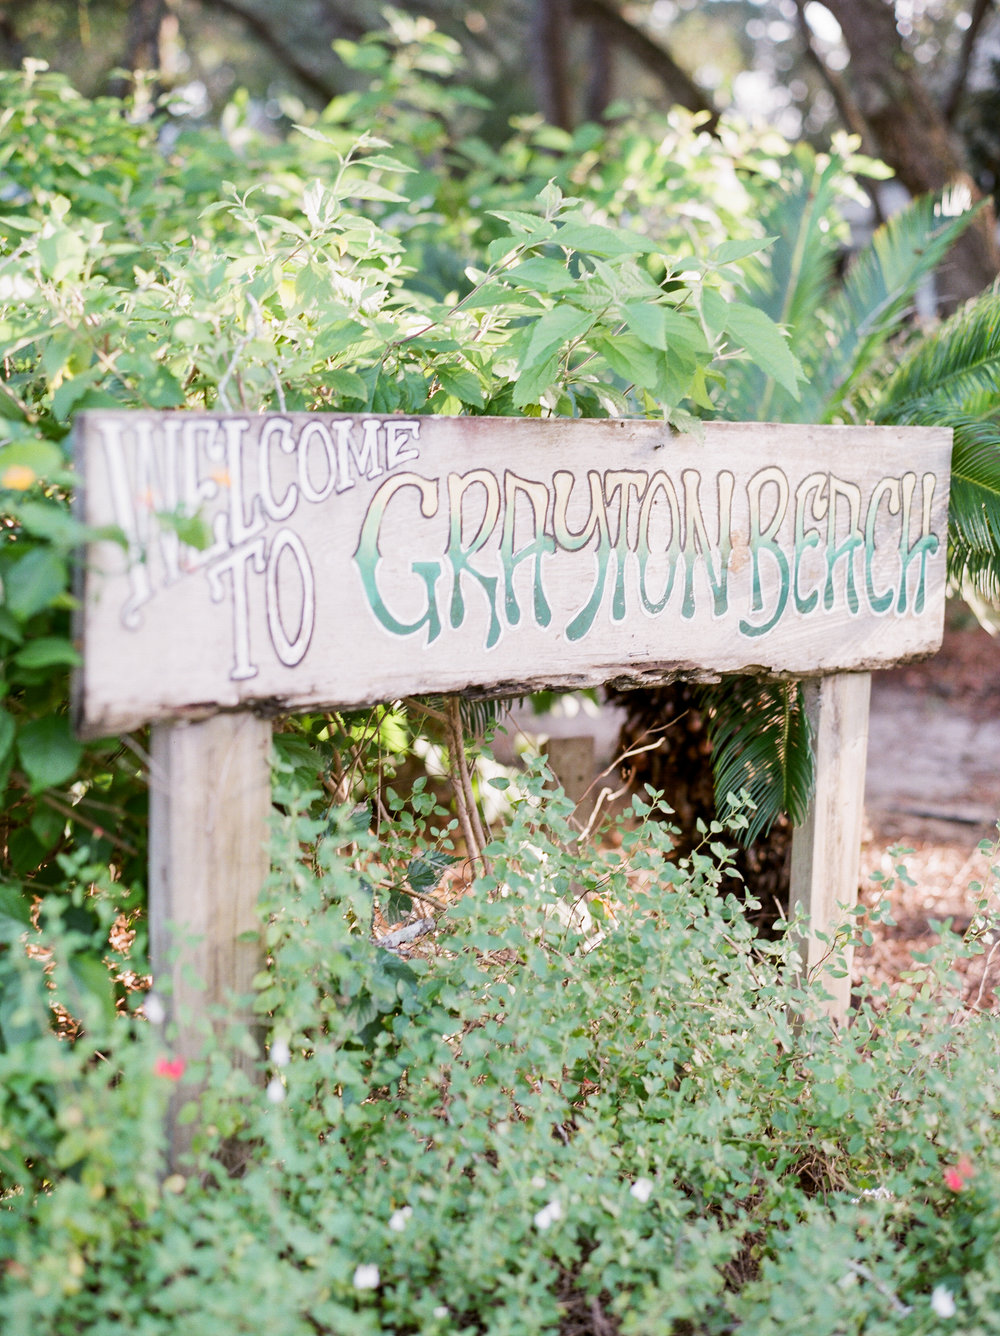 graytonbeach-fl-wedding-photographers-kayliebpoplinphotography